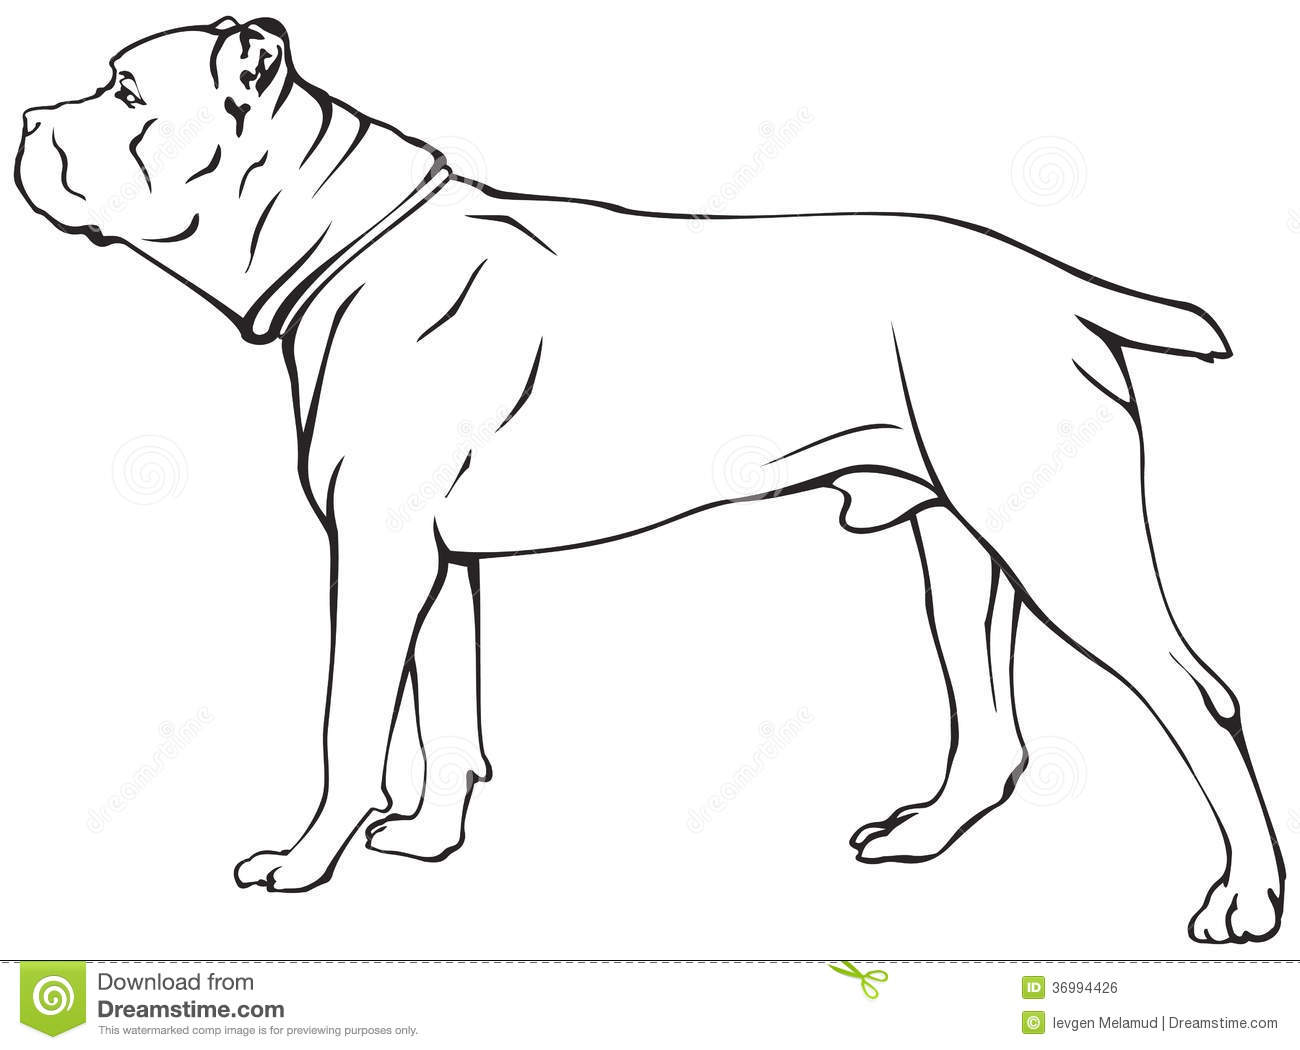 Royalty Free Stock Image Cane Corso Dog Breed Vector Illustration Show Sign Symbol Set Image36994426 on 8 dogs illustration